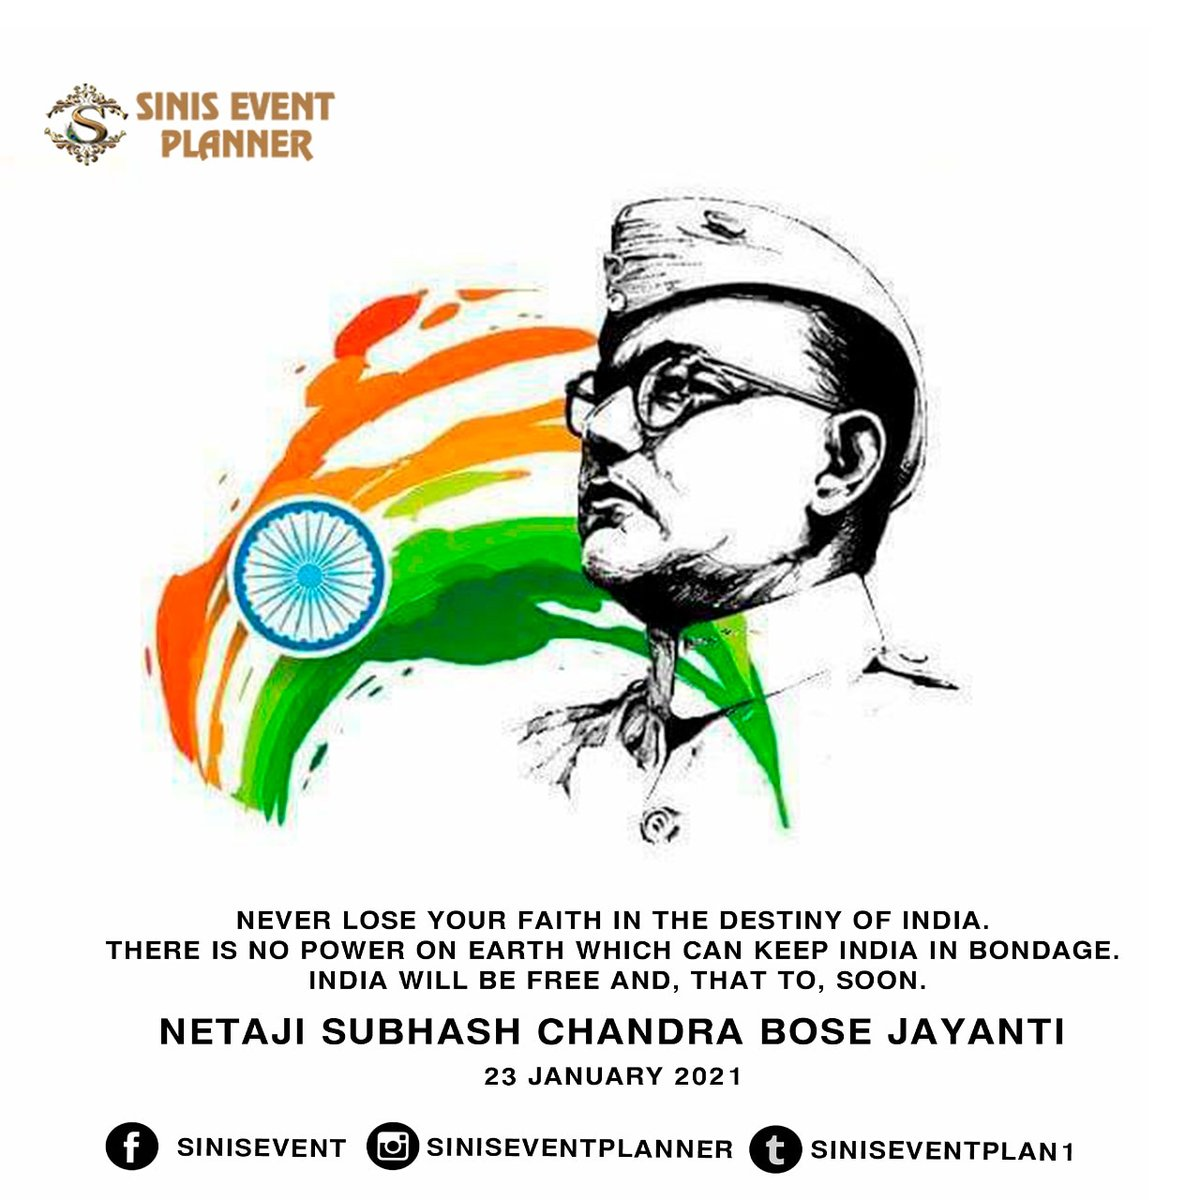 Born on 23rd January 1897, Bose's defiant patriotism and brilliant strategizing earned him the honour of an hero in India. Today, on his birth anniversary, let's pay him our respects 🙏🏽 #netajisubashchandrabose #birthanniversary #hero #fighter